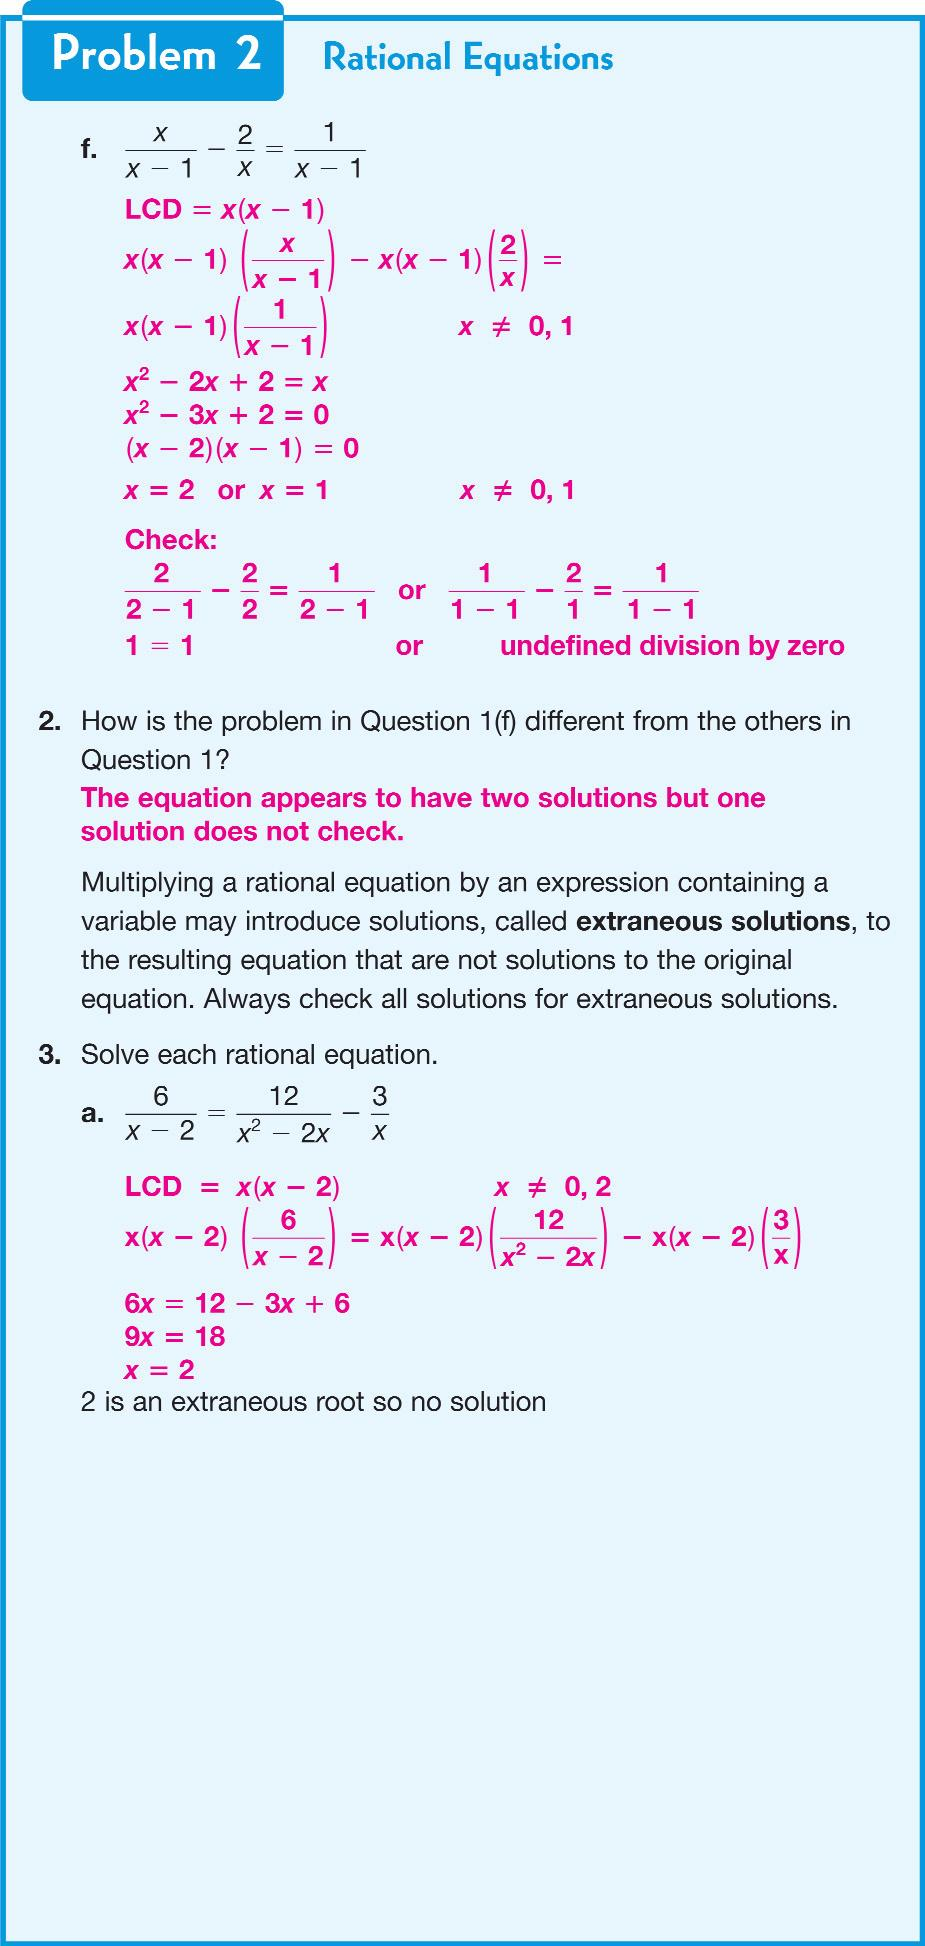 Explore Together Note Extraneous solutions are explained as solutions that result from multiplying a rational equation by an expression containing a variable and that are not